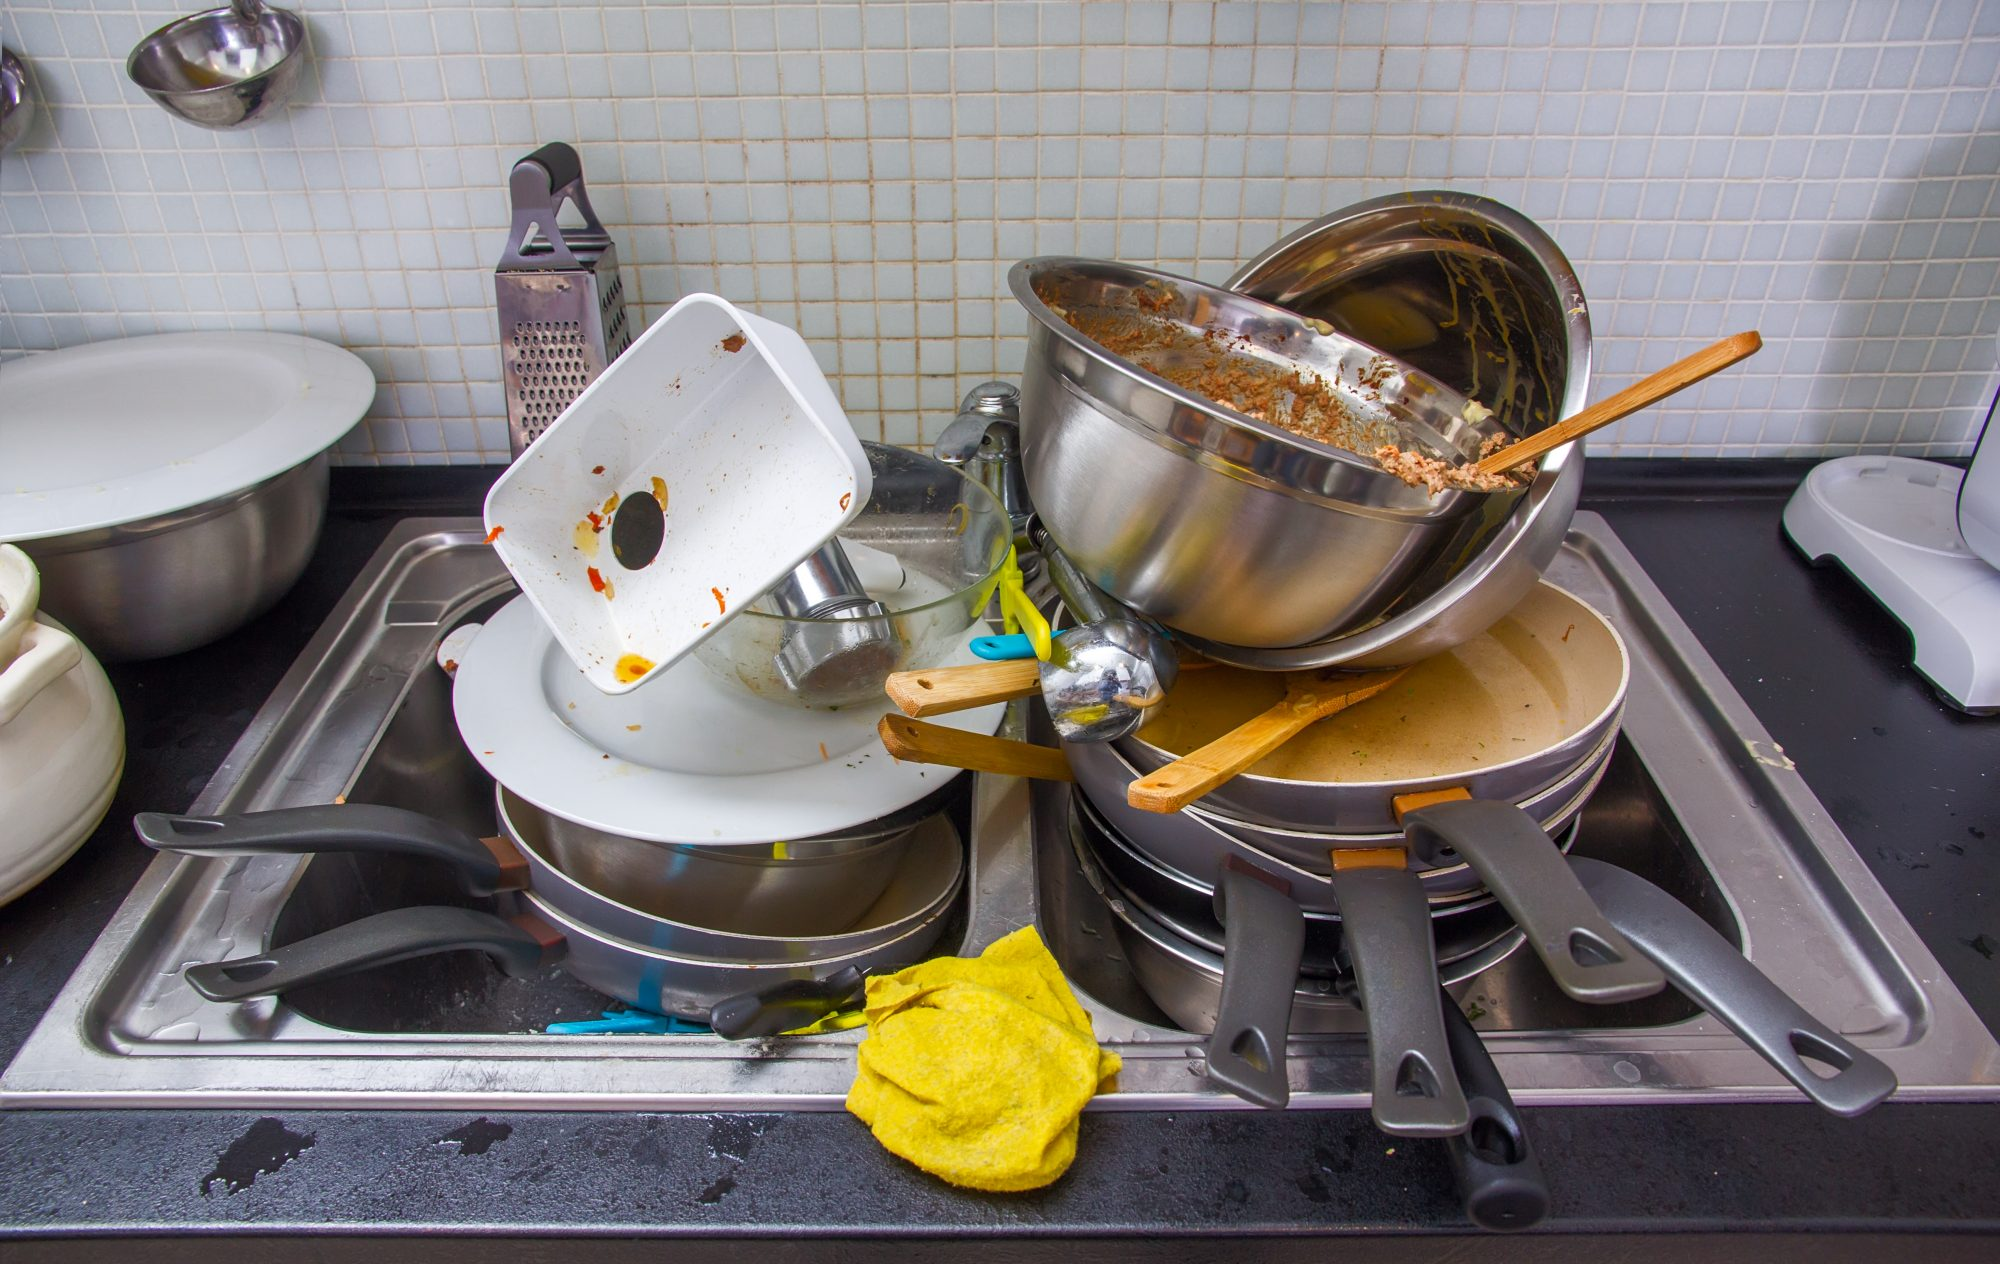 dishes sink dirty piling keep minute getty trick sergii